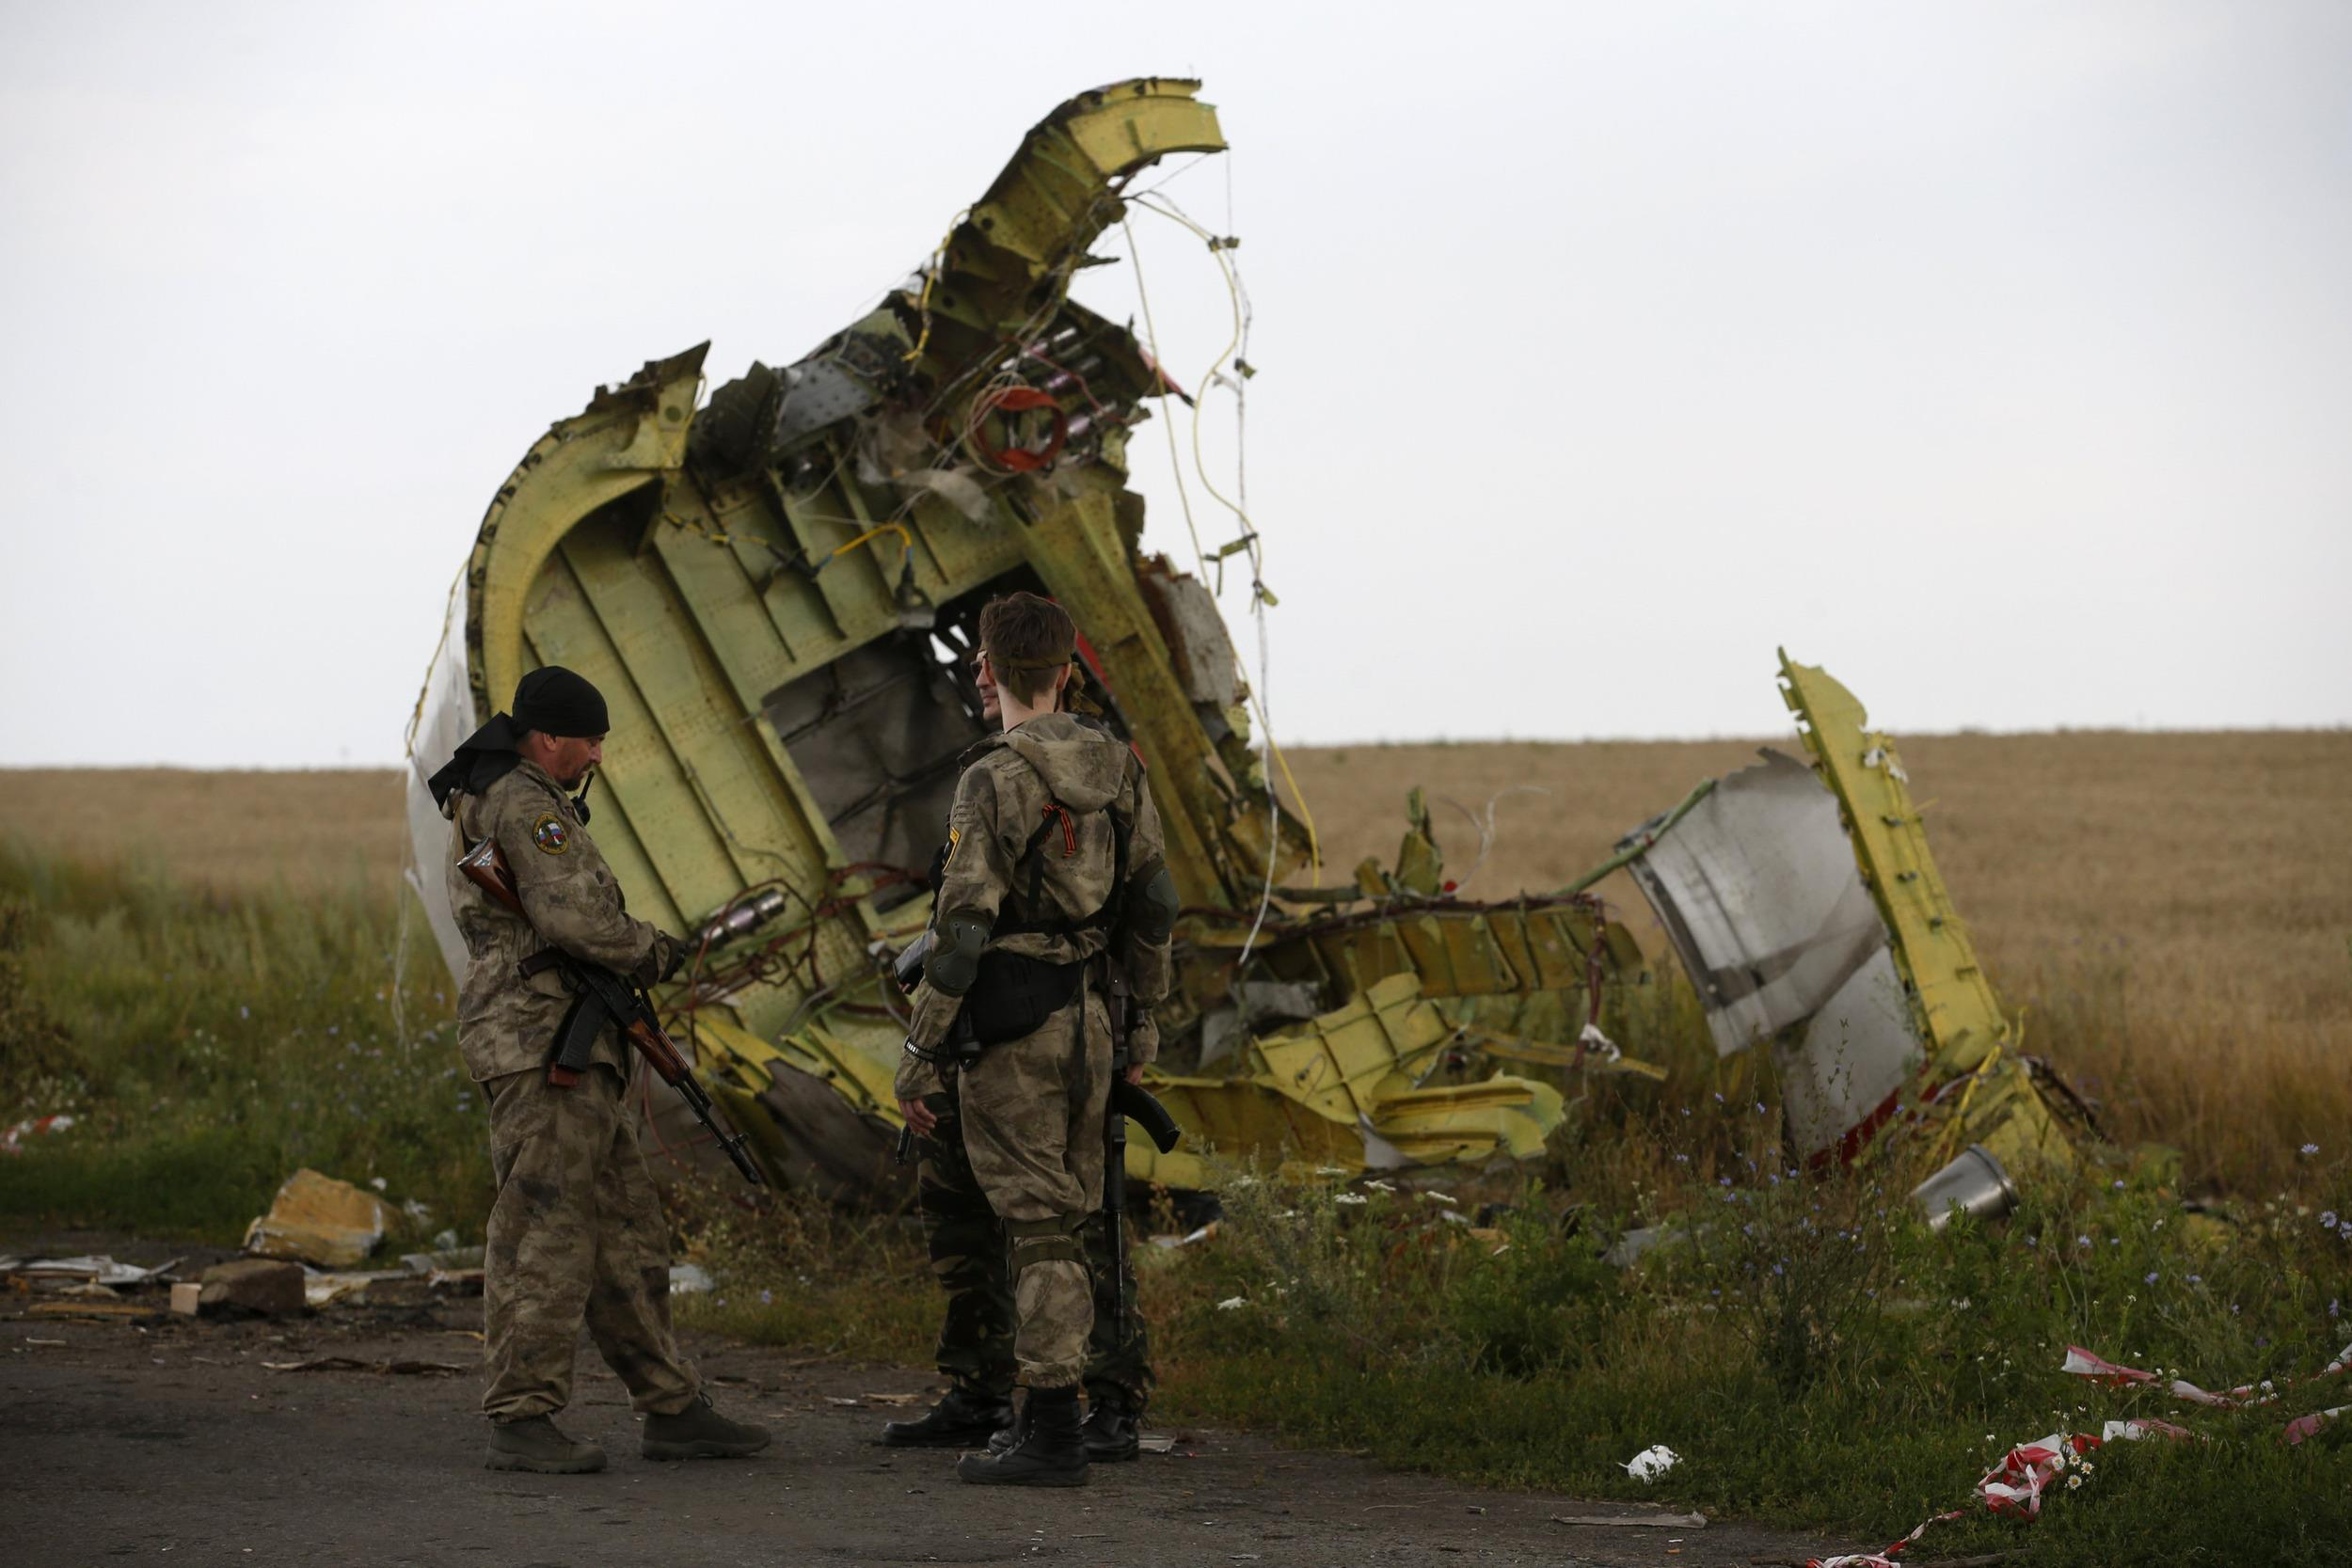 Armed pro-Russian separatists stand guard as monitors from the Organization for Security and Cooperation in Europe (OSCE) inspect the crash site of Malaysia Airlines Flight MH17.